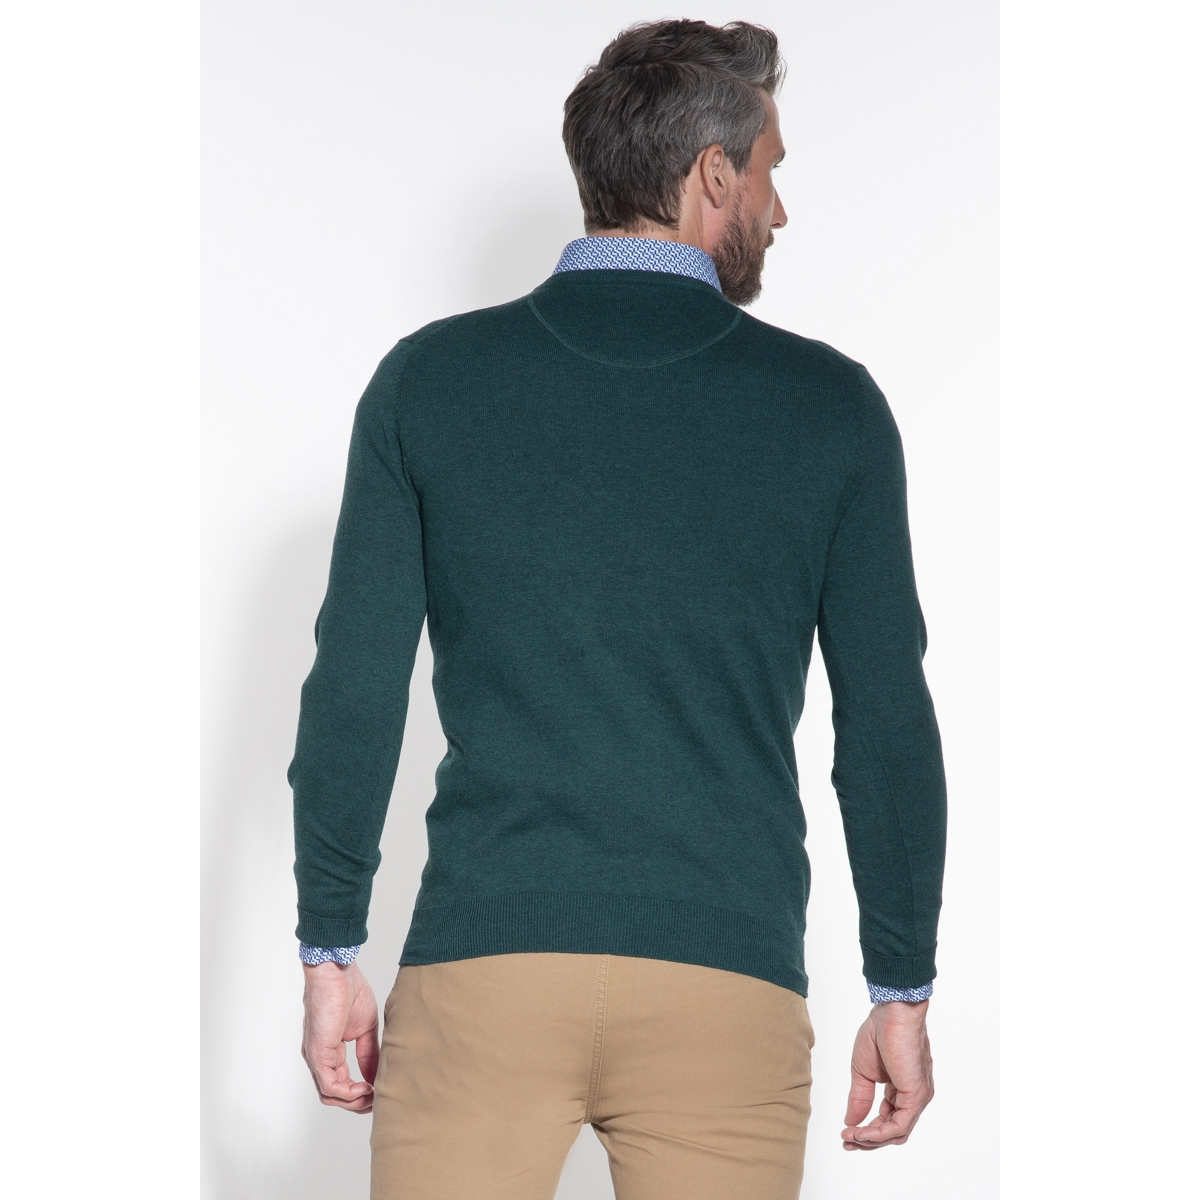 classic pullover v hals 050098 campbell trui 005 donkergroen uni